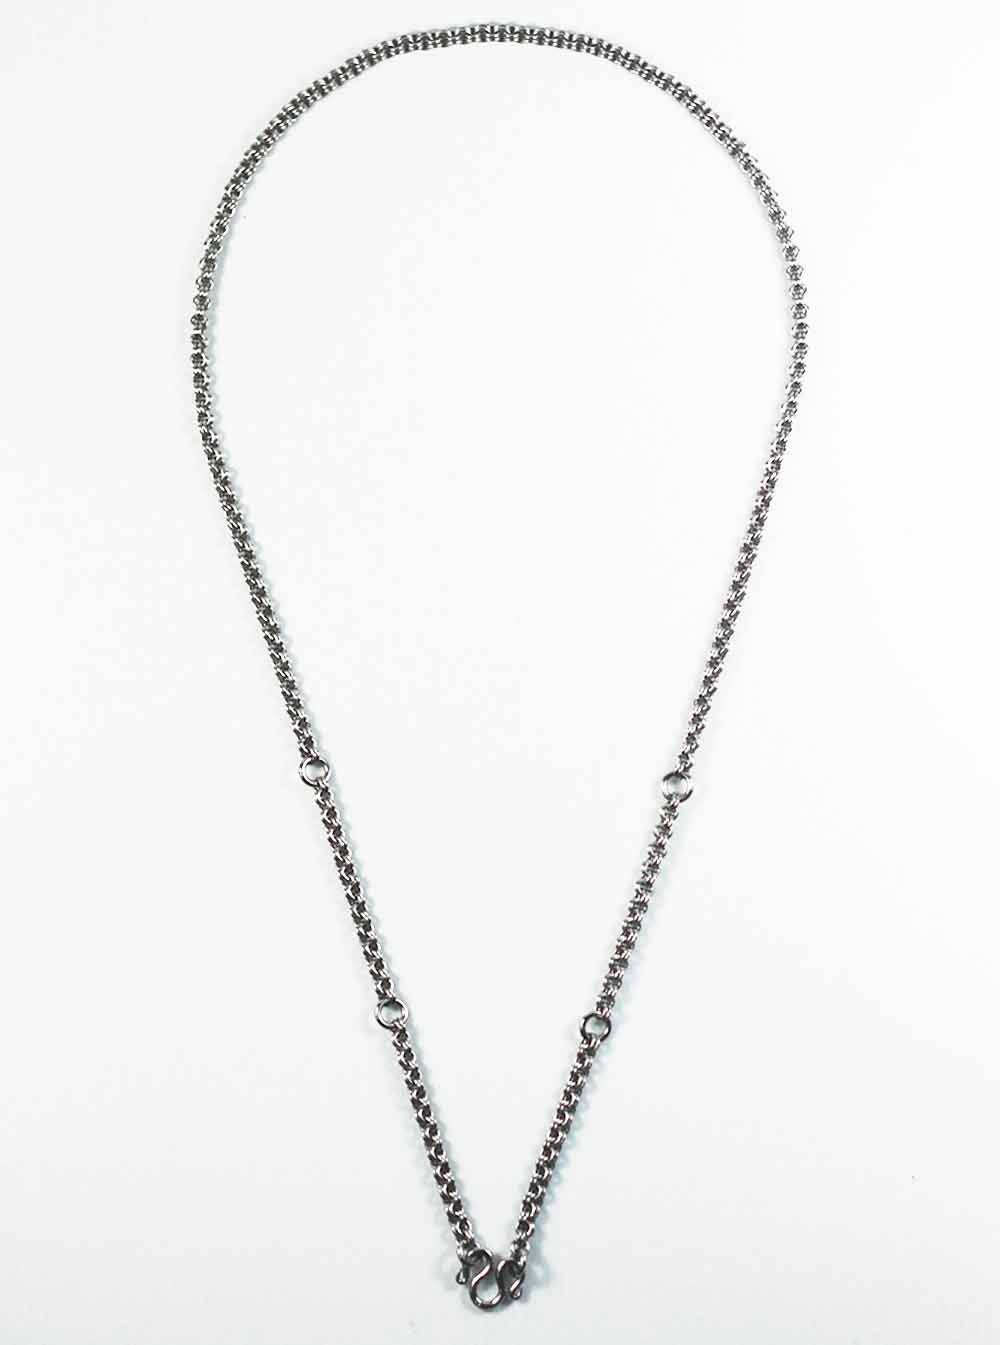 Stainless steel double ring chain five hooks thai amulet necklace stainless steel double ring chain five hooks thai amulet necklace 71cm 1 aloadofball Choice Image